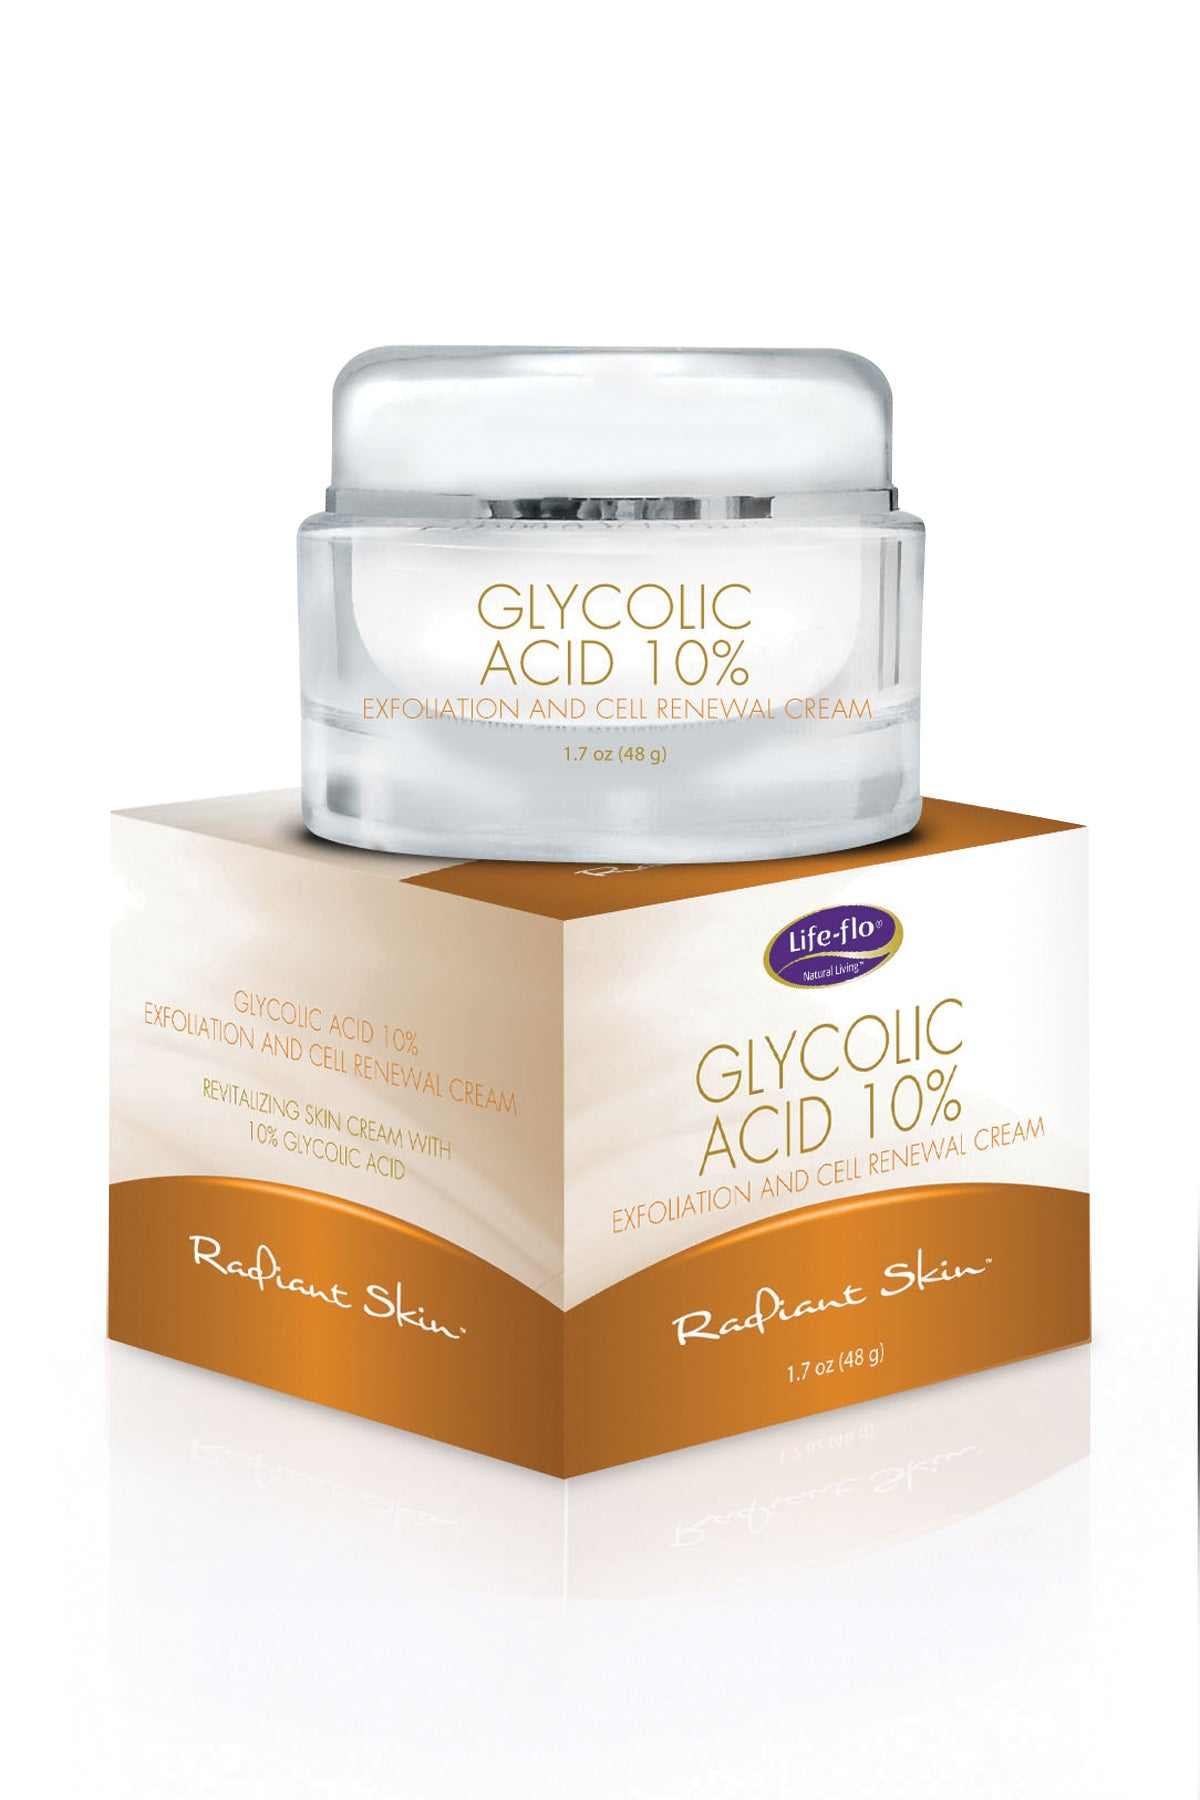 Glycolic Acid 10% - 1.7 ounces